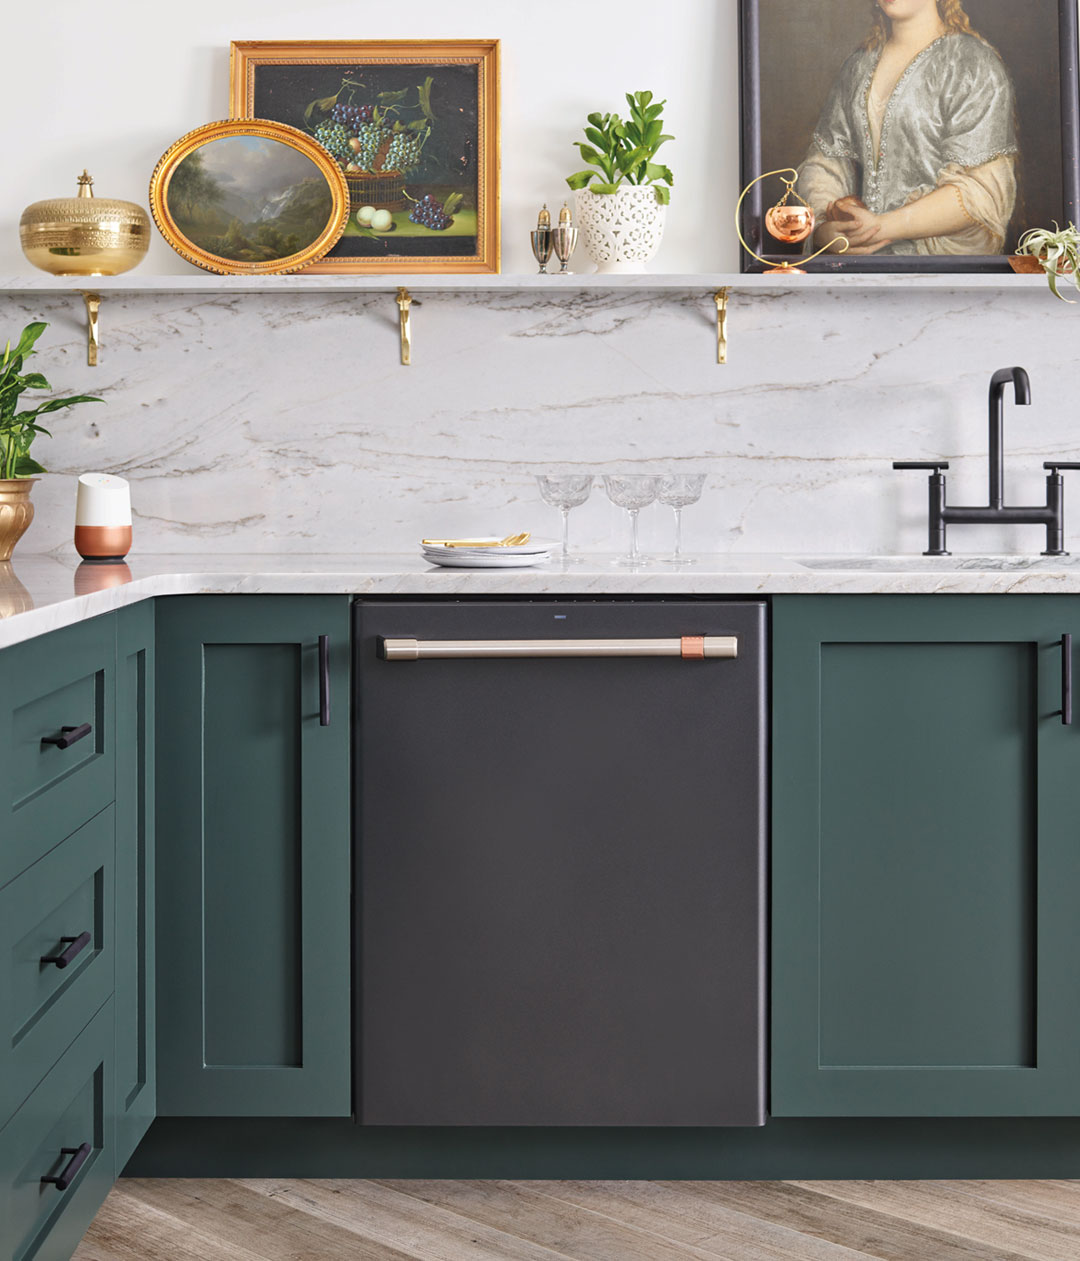 matte black dishwasher with green cabinets